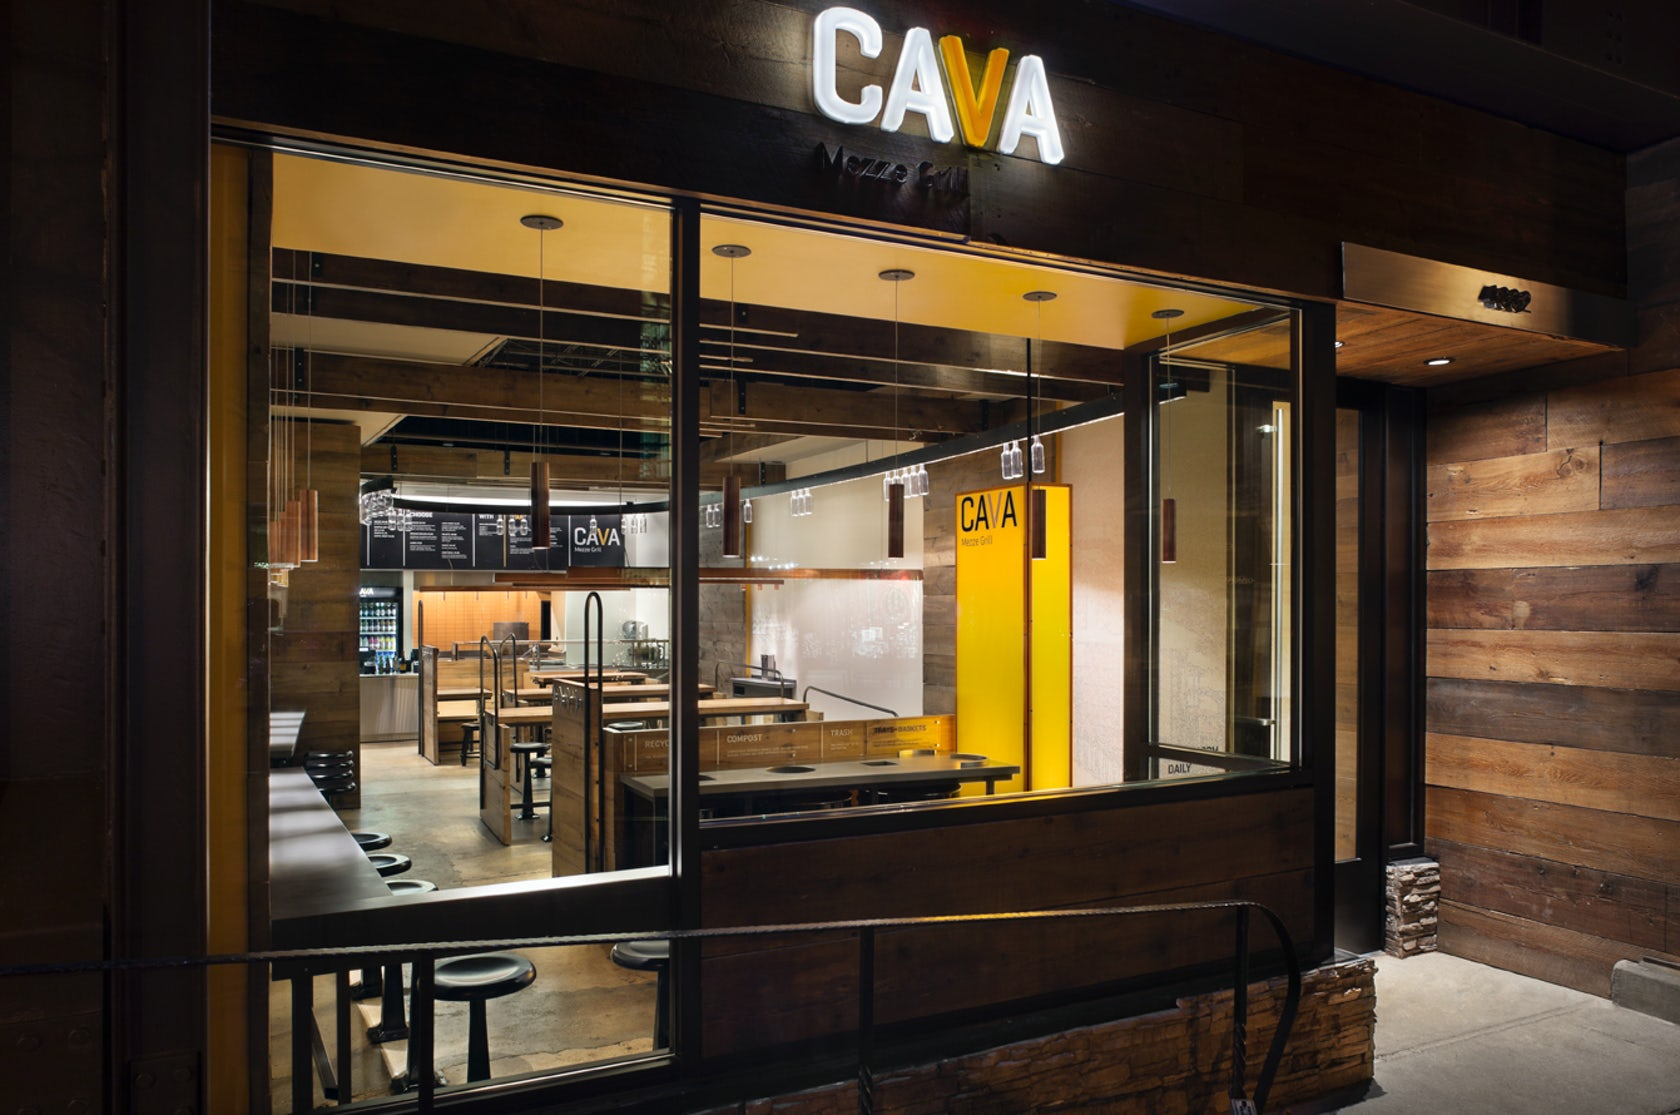 Cava Mezze Grill Architizer